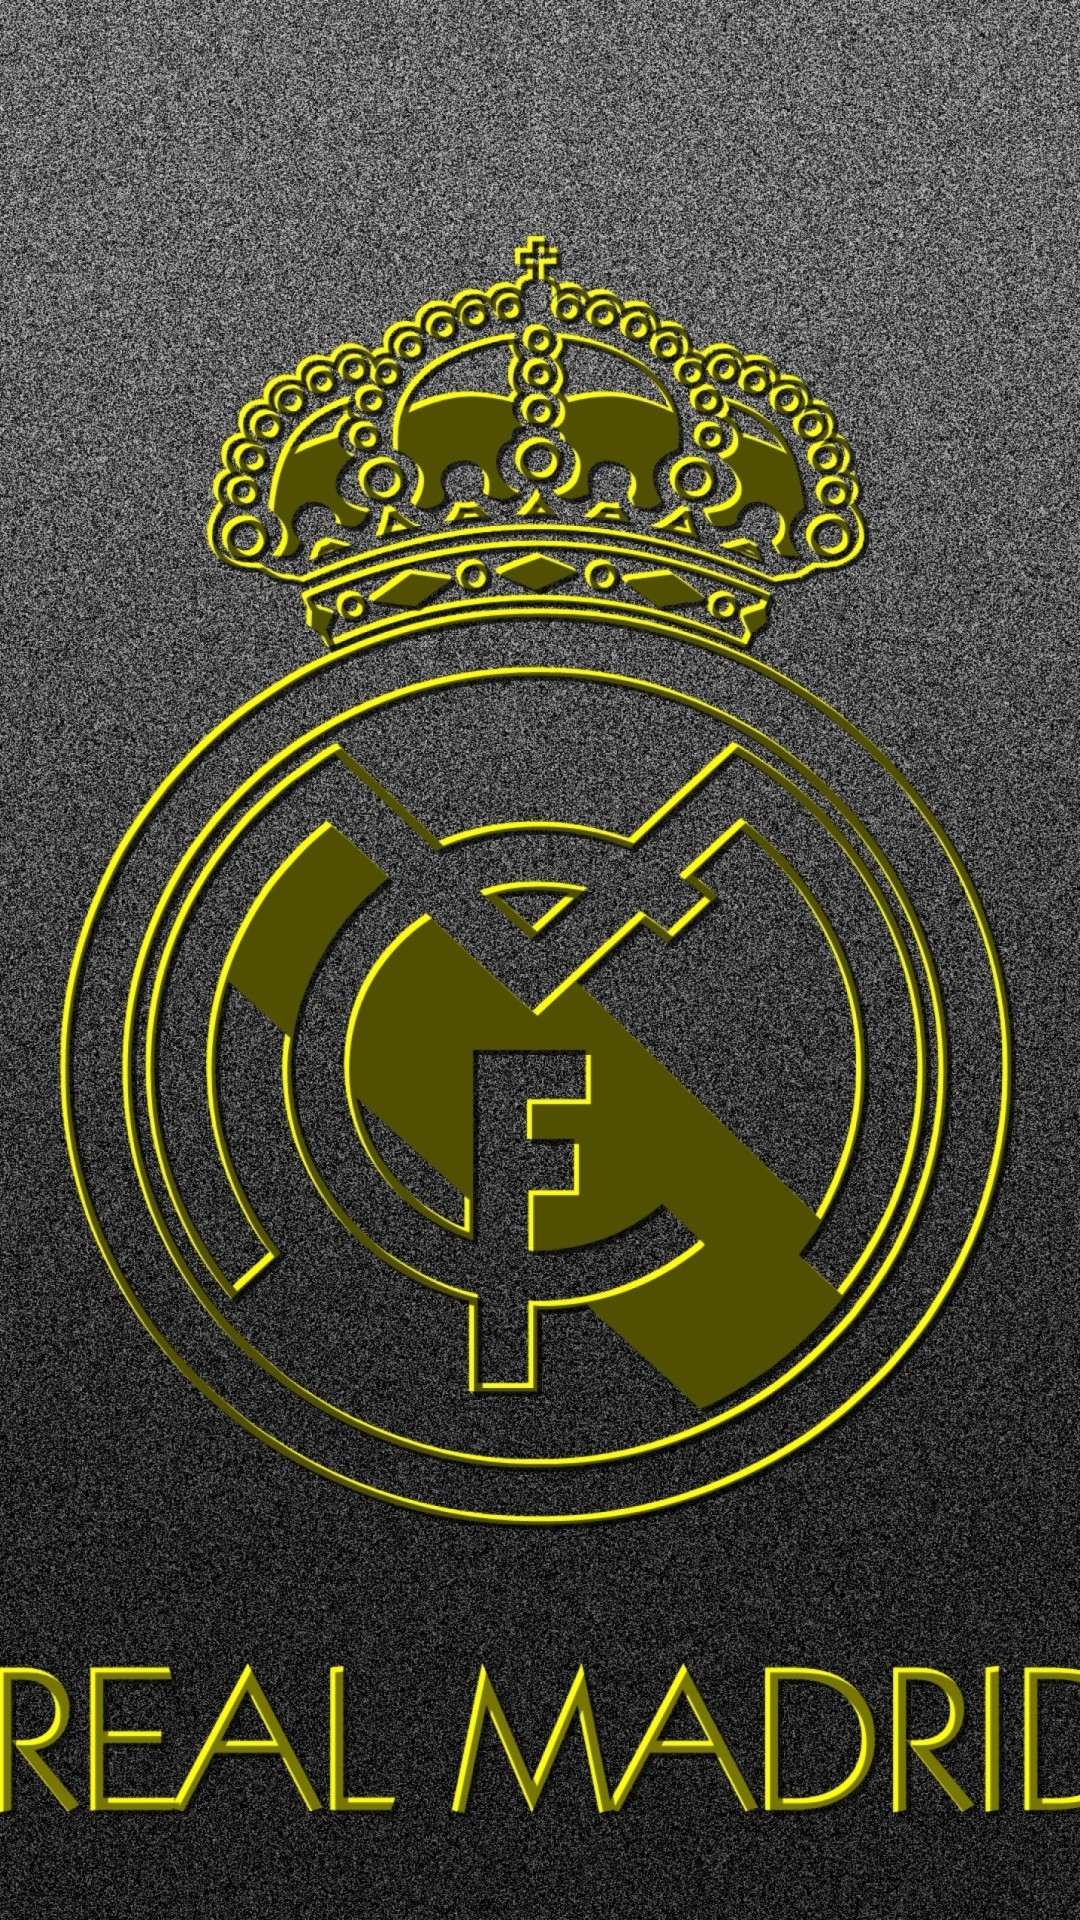 hala madrid wallpapers (77+ images)